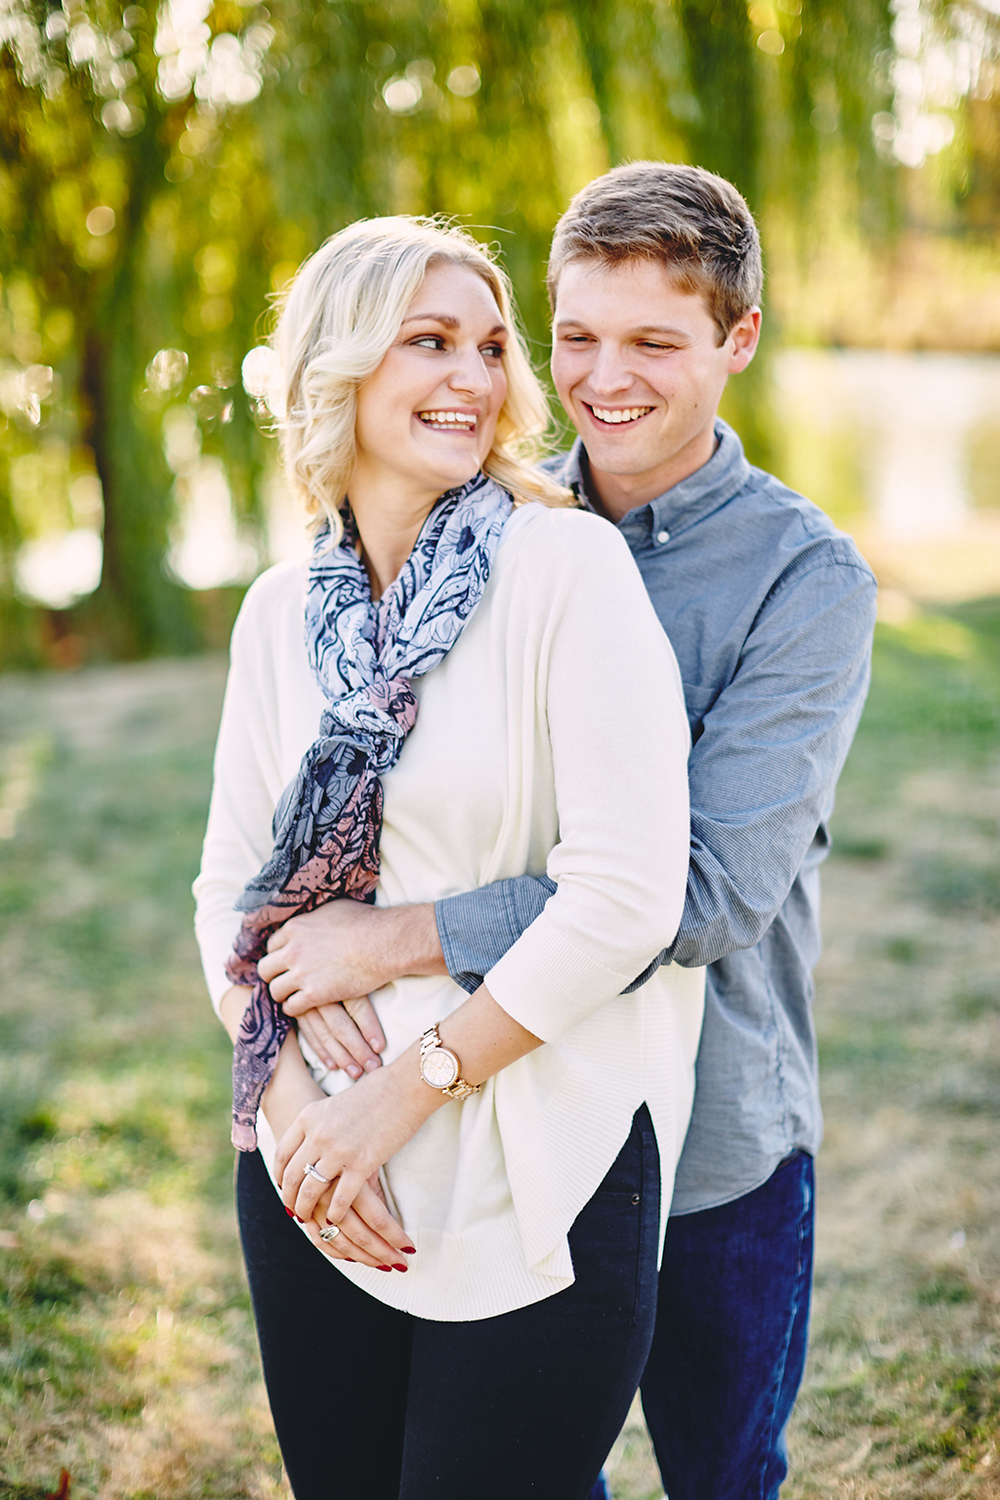 St. Louis Boathouse Engagement Session in Forest Park by Oldani Photography